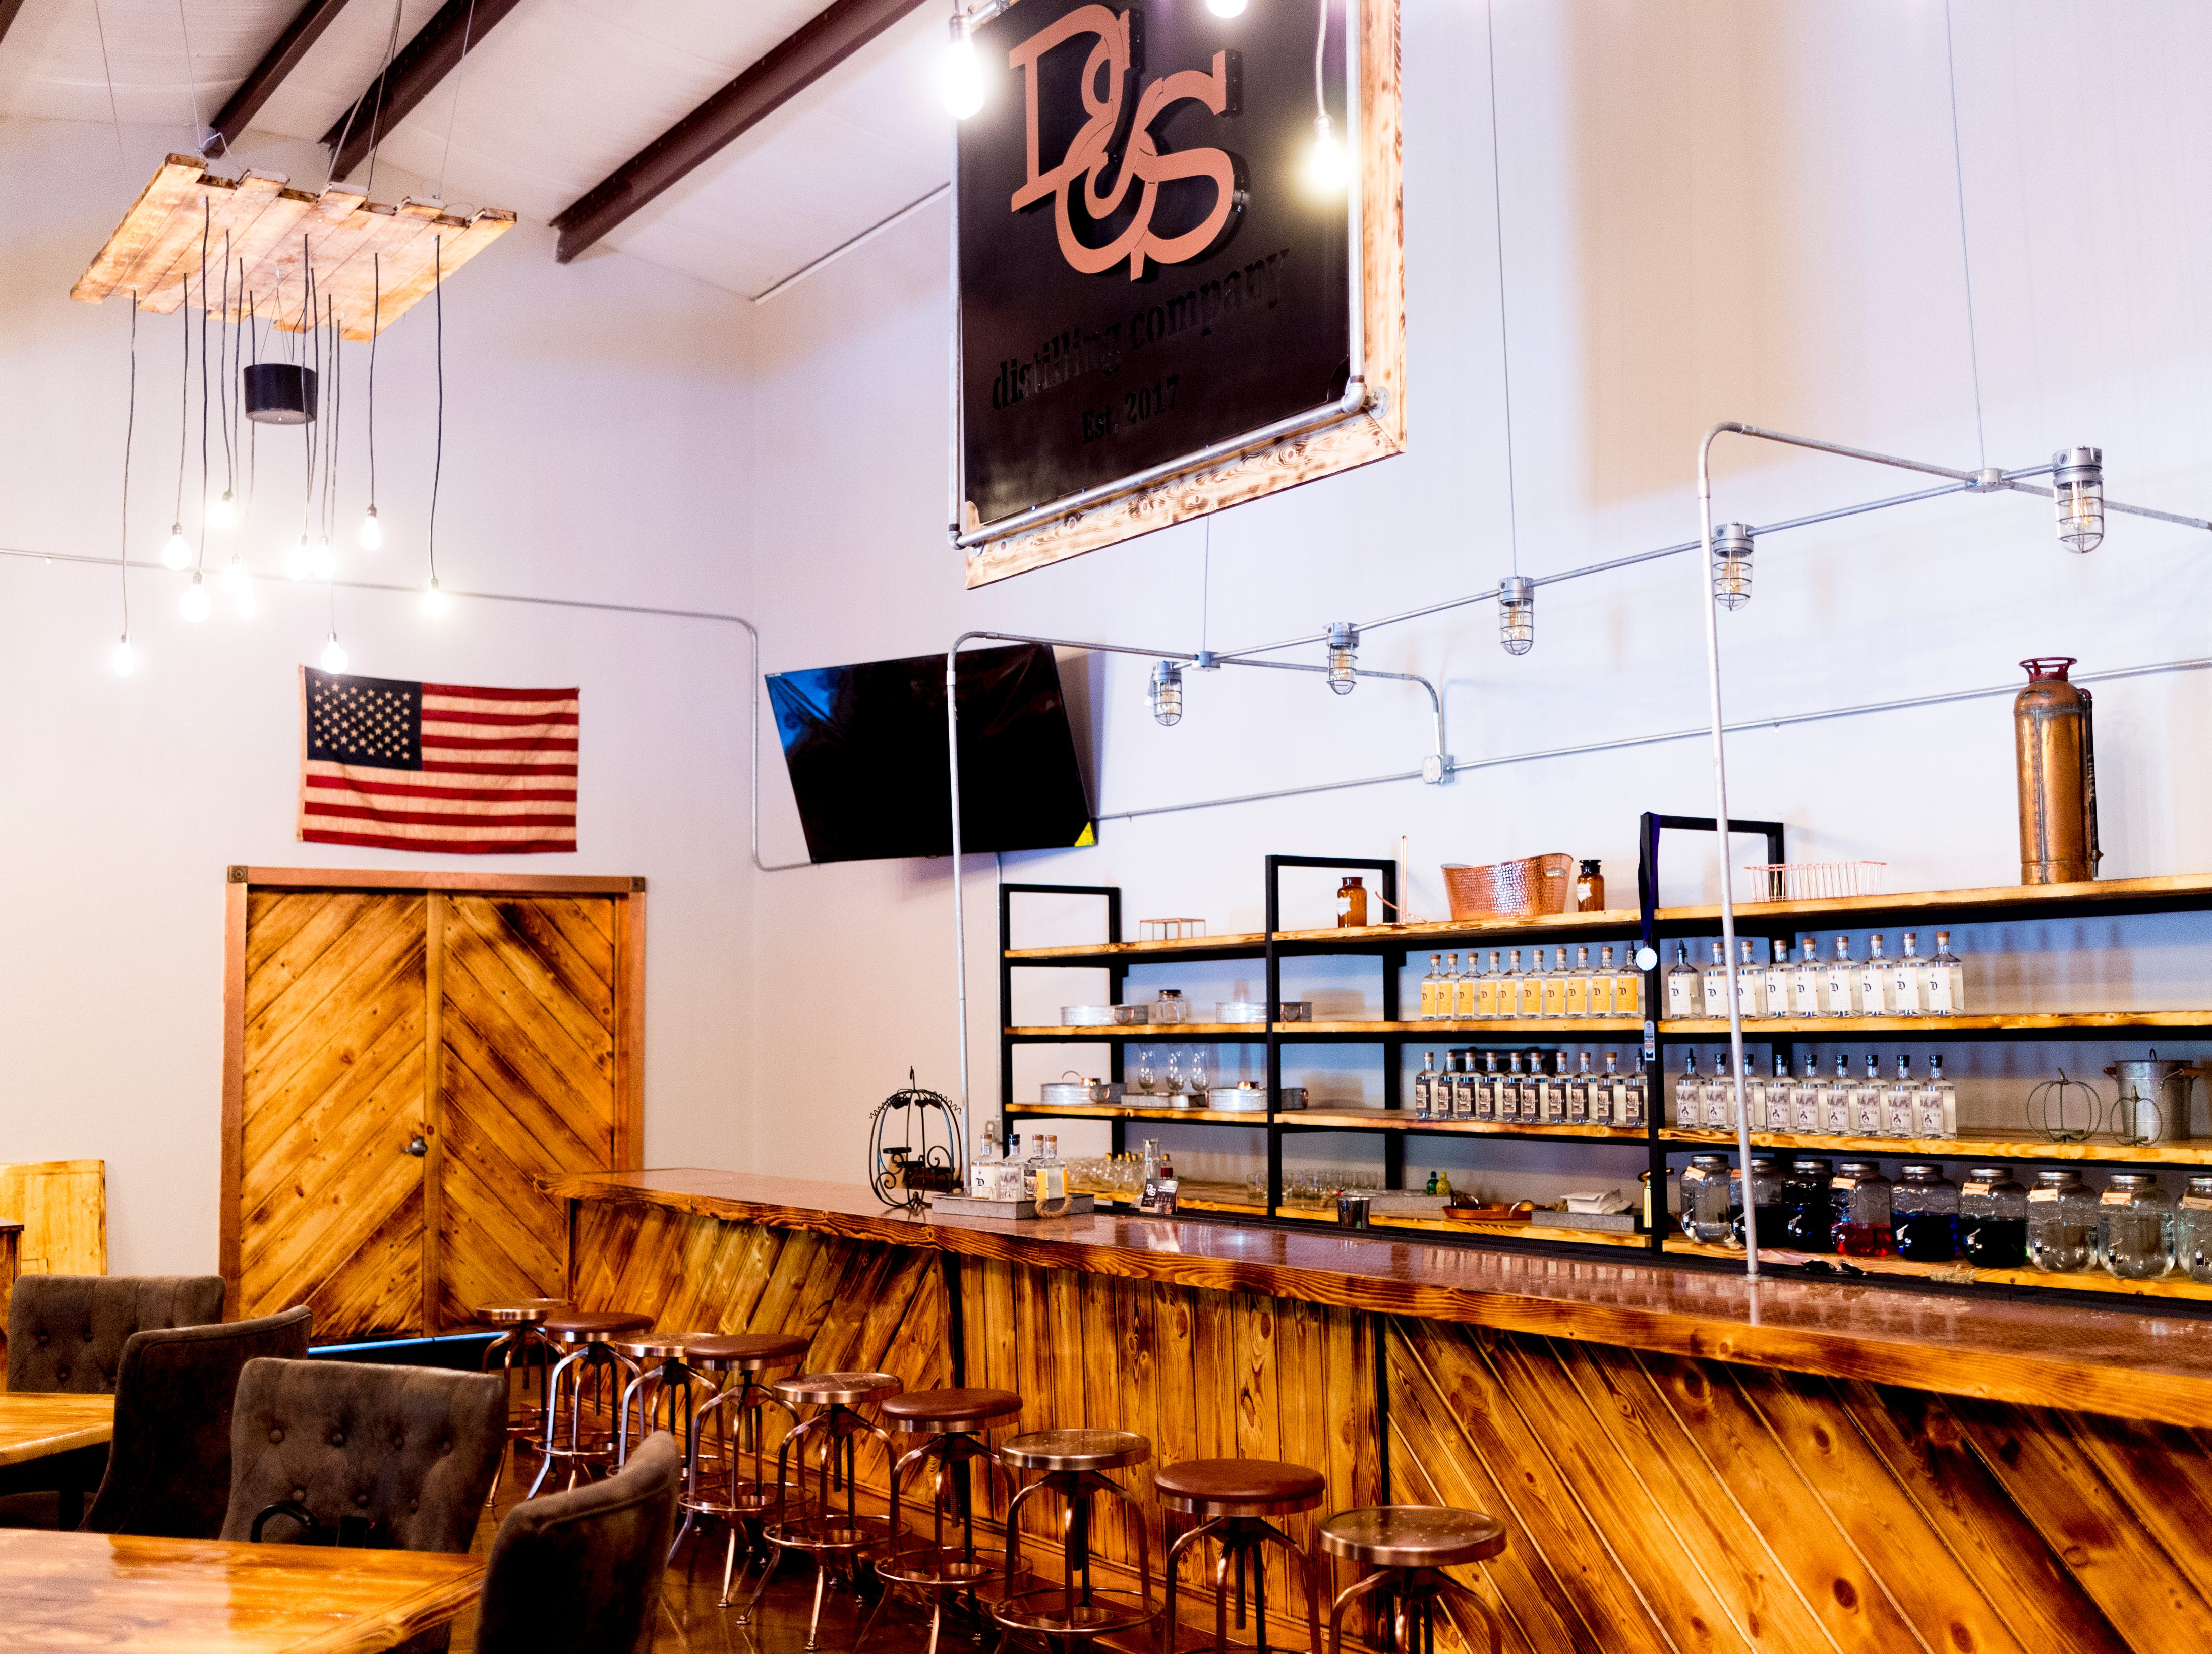 The bar area inside D&S Distilling on 1610 Jenkins Rd. in Sevierville, Tennessee on Tuesday, October 9, 2018. D&S Distilling is TennesseeÕs first completely organic and gluten-free distillery.